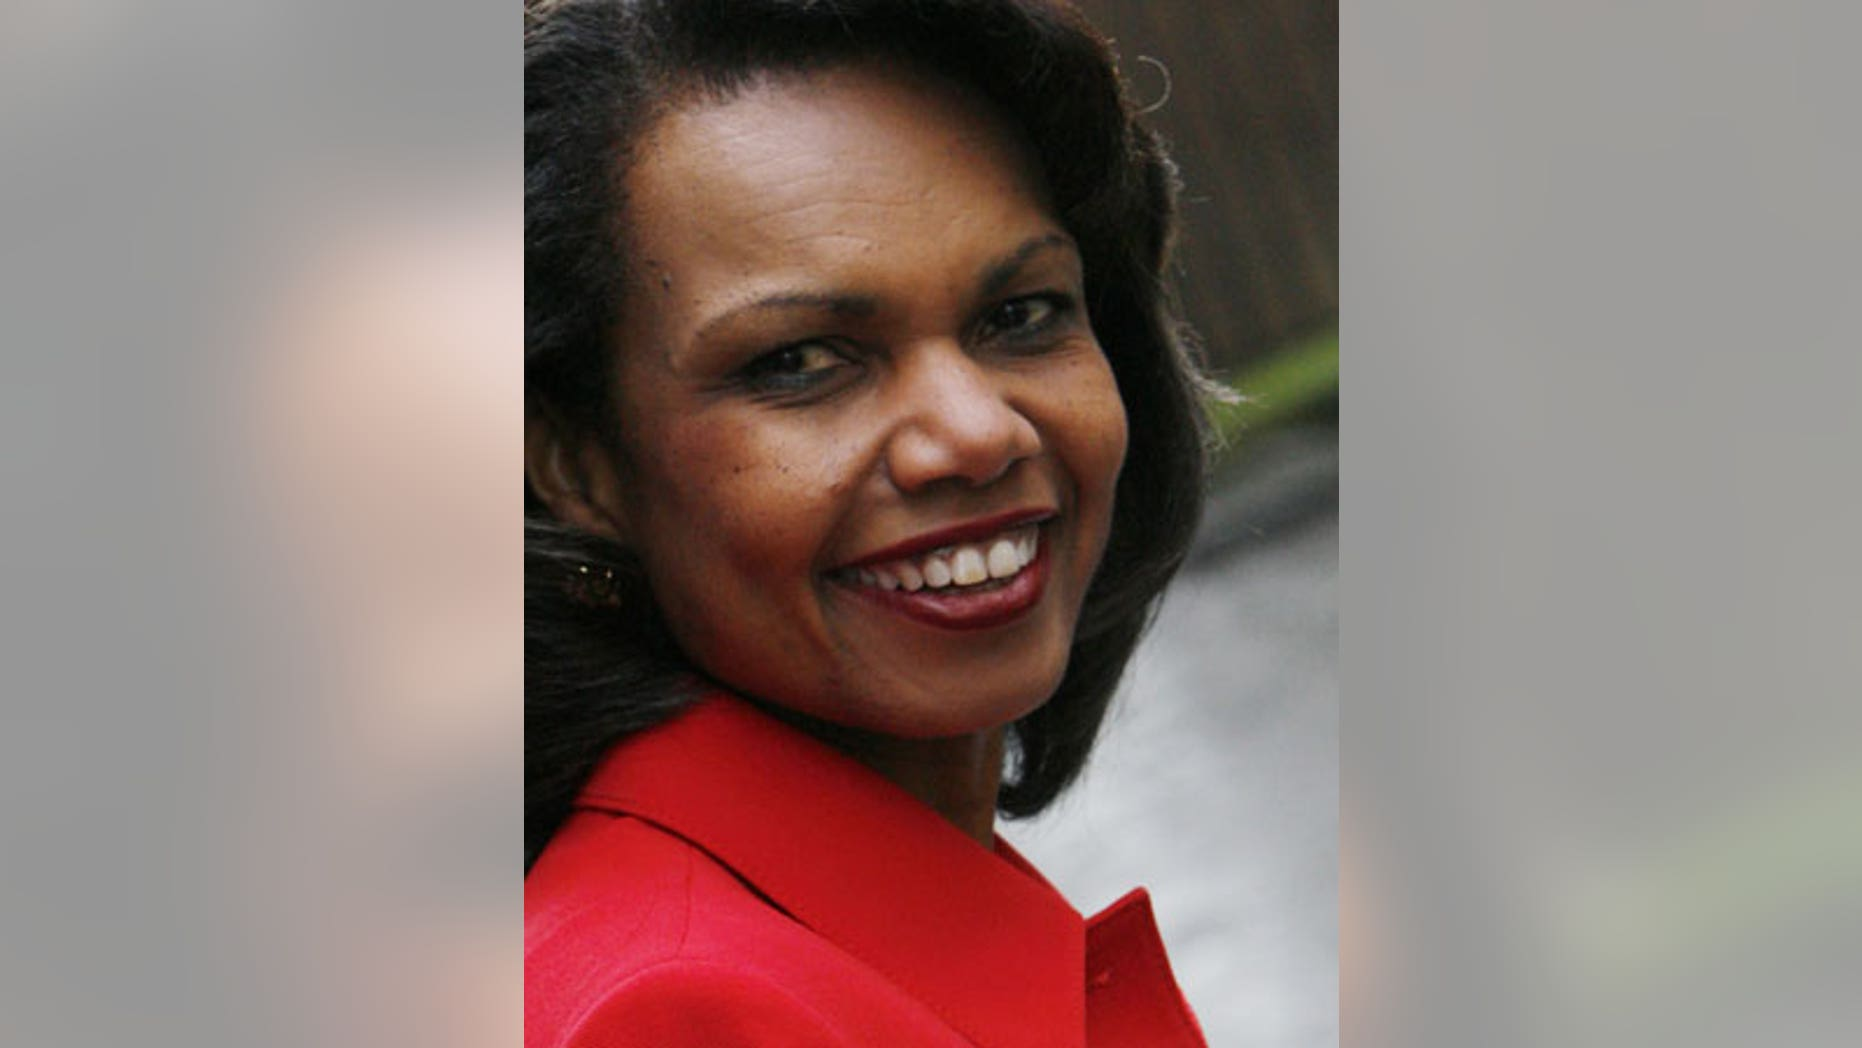 J.R.R. Tolkein has nothing on Condoleezza Rice, who just signed on to write her own trilogy.